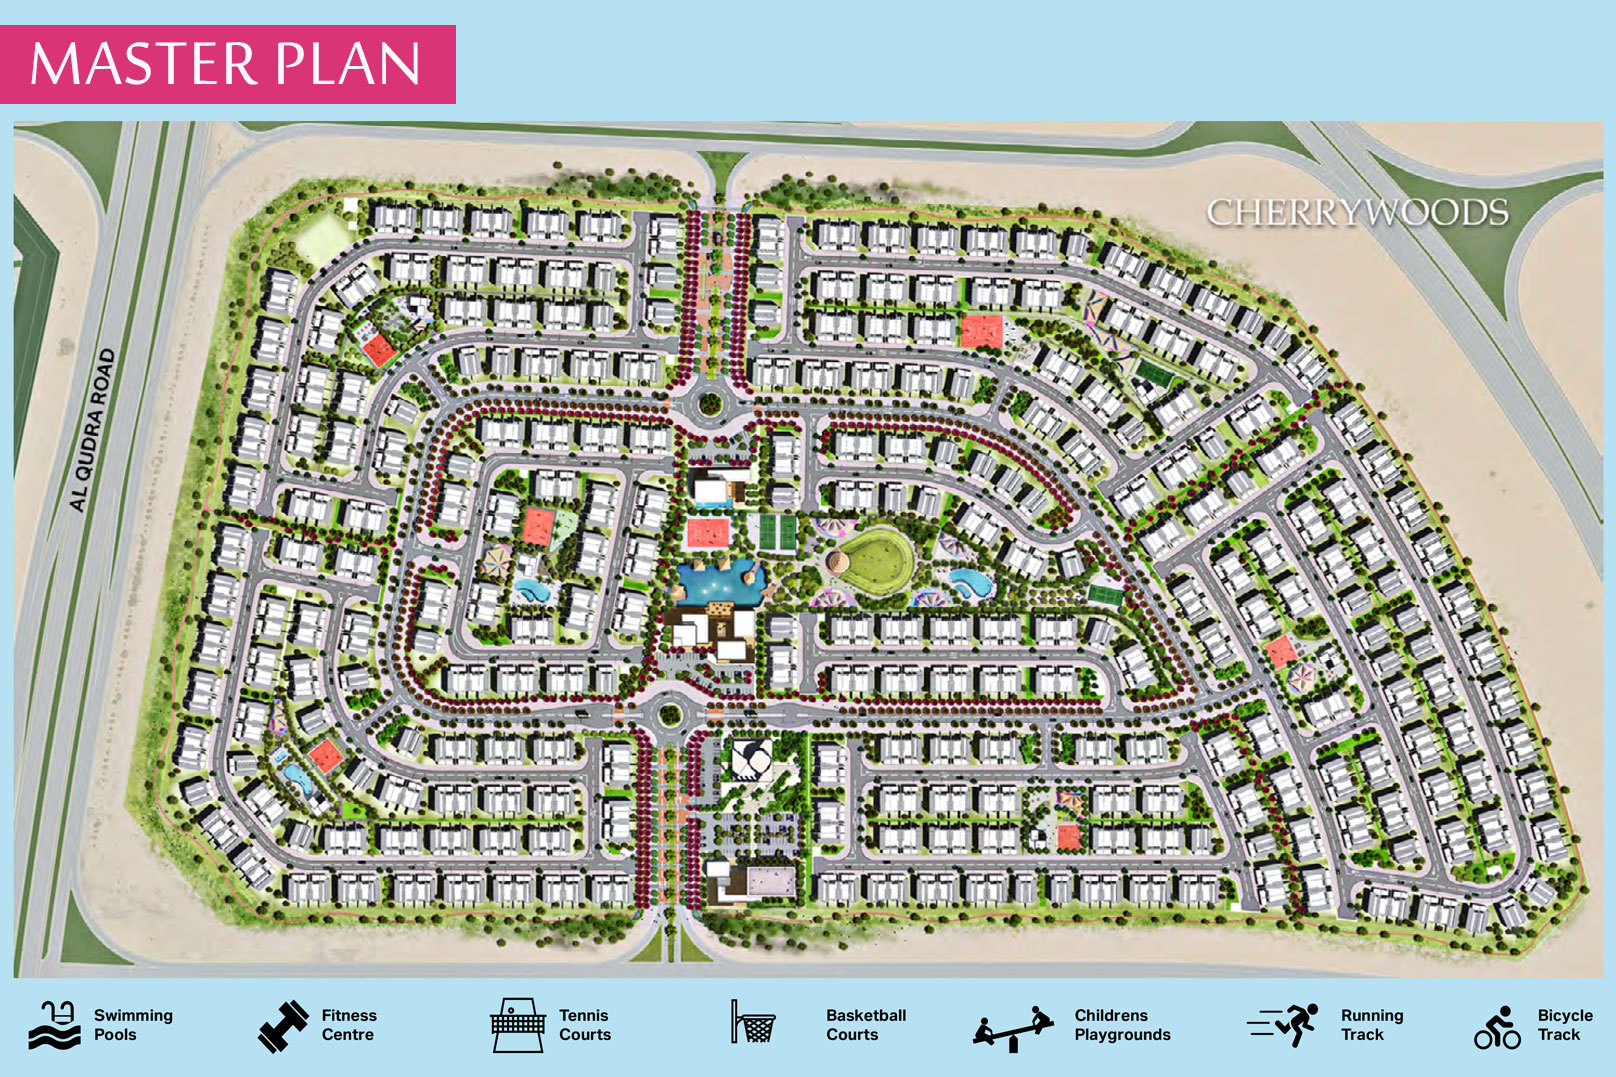 Cherrywoods-Townhouses Master Plan